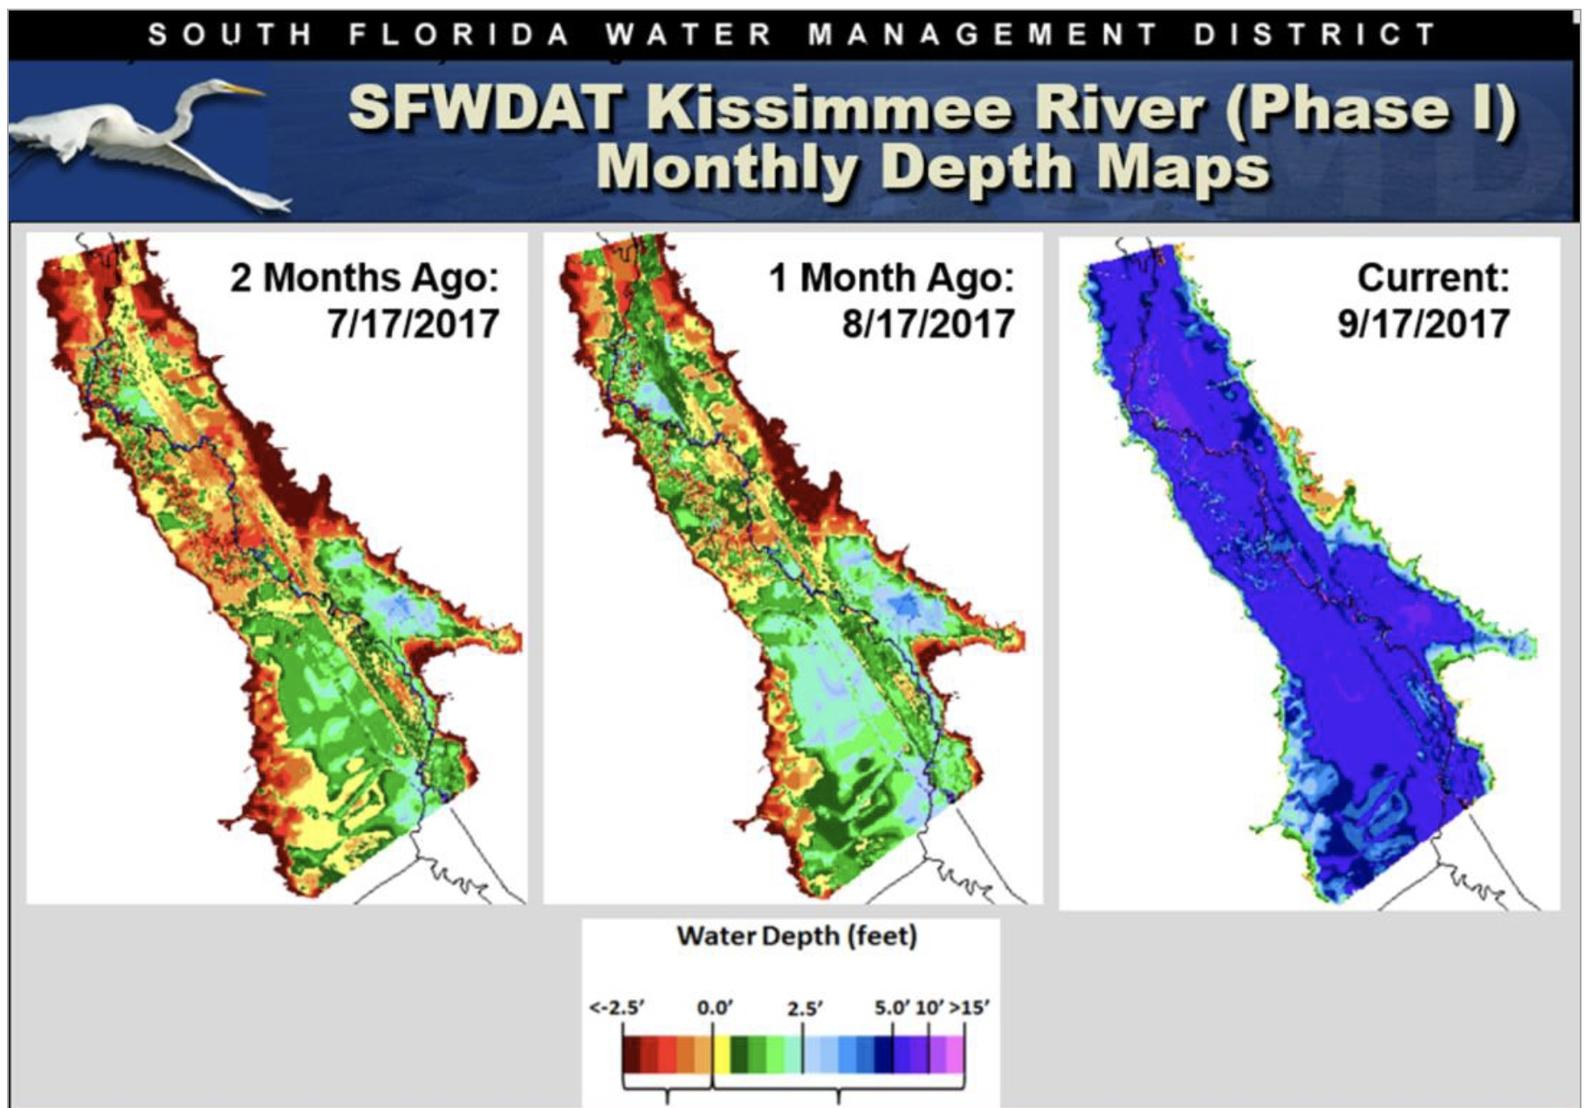 Kissimmee River Restoration Proves that Everglades Restoration ... on cypress location on map, west lake kissimmee map, lake diane michigan map, kissimmee zip code map, chain o'lakes wisconsin map, kissimmee lake brush piles, lake kissimmee bass map, walk in water lake florida map, little lake harris map, kissimmee city map, lake tohopekaliga florida map, indiana lakes map, fishing crooked lake chain map, osceola county fl map, east lake tohopekaliga map, orange lake resort orlando fl map, lake kissimmee fl map, kissimmee florida attractions, lake kissimmee topo map, cadillac michigan lakes map,